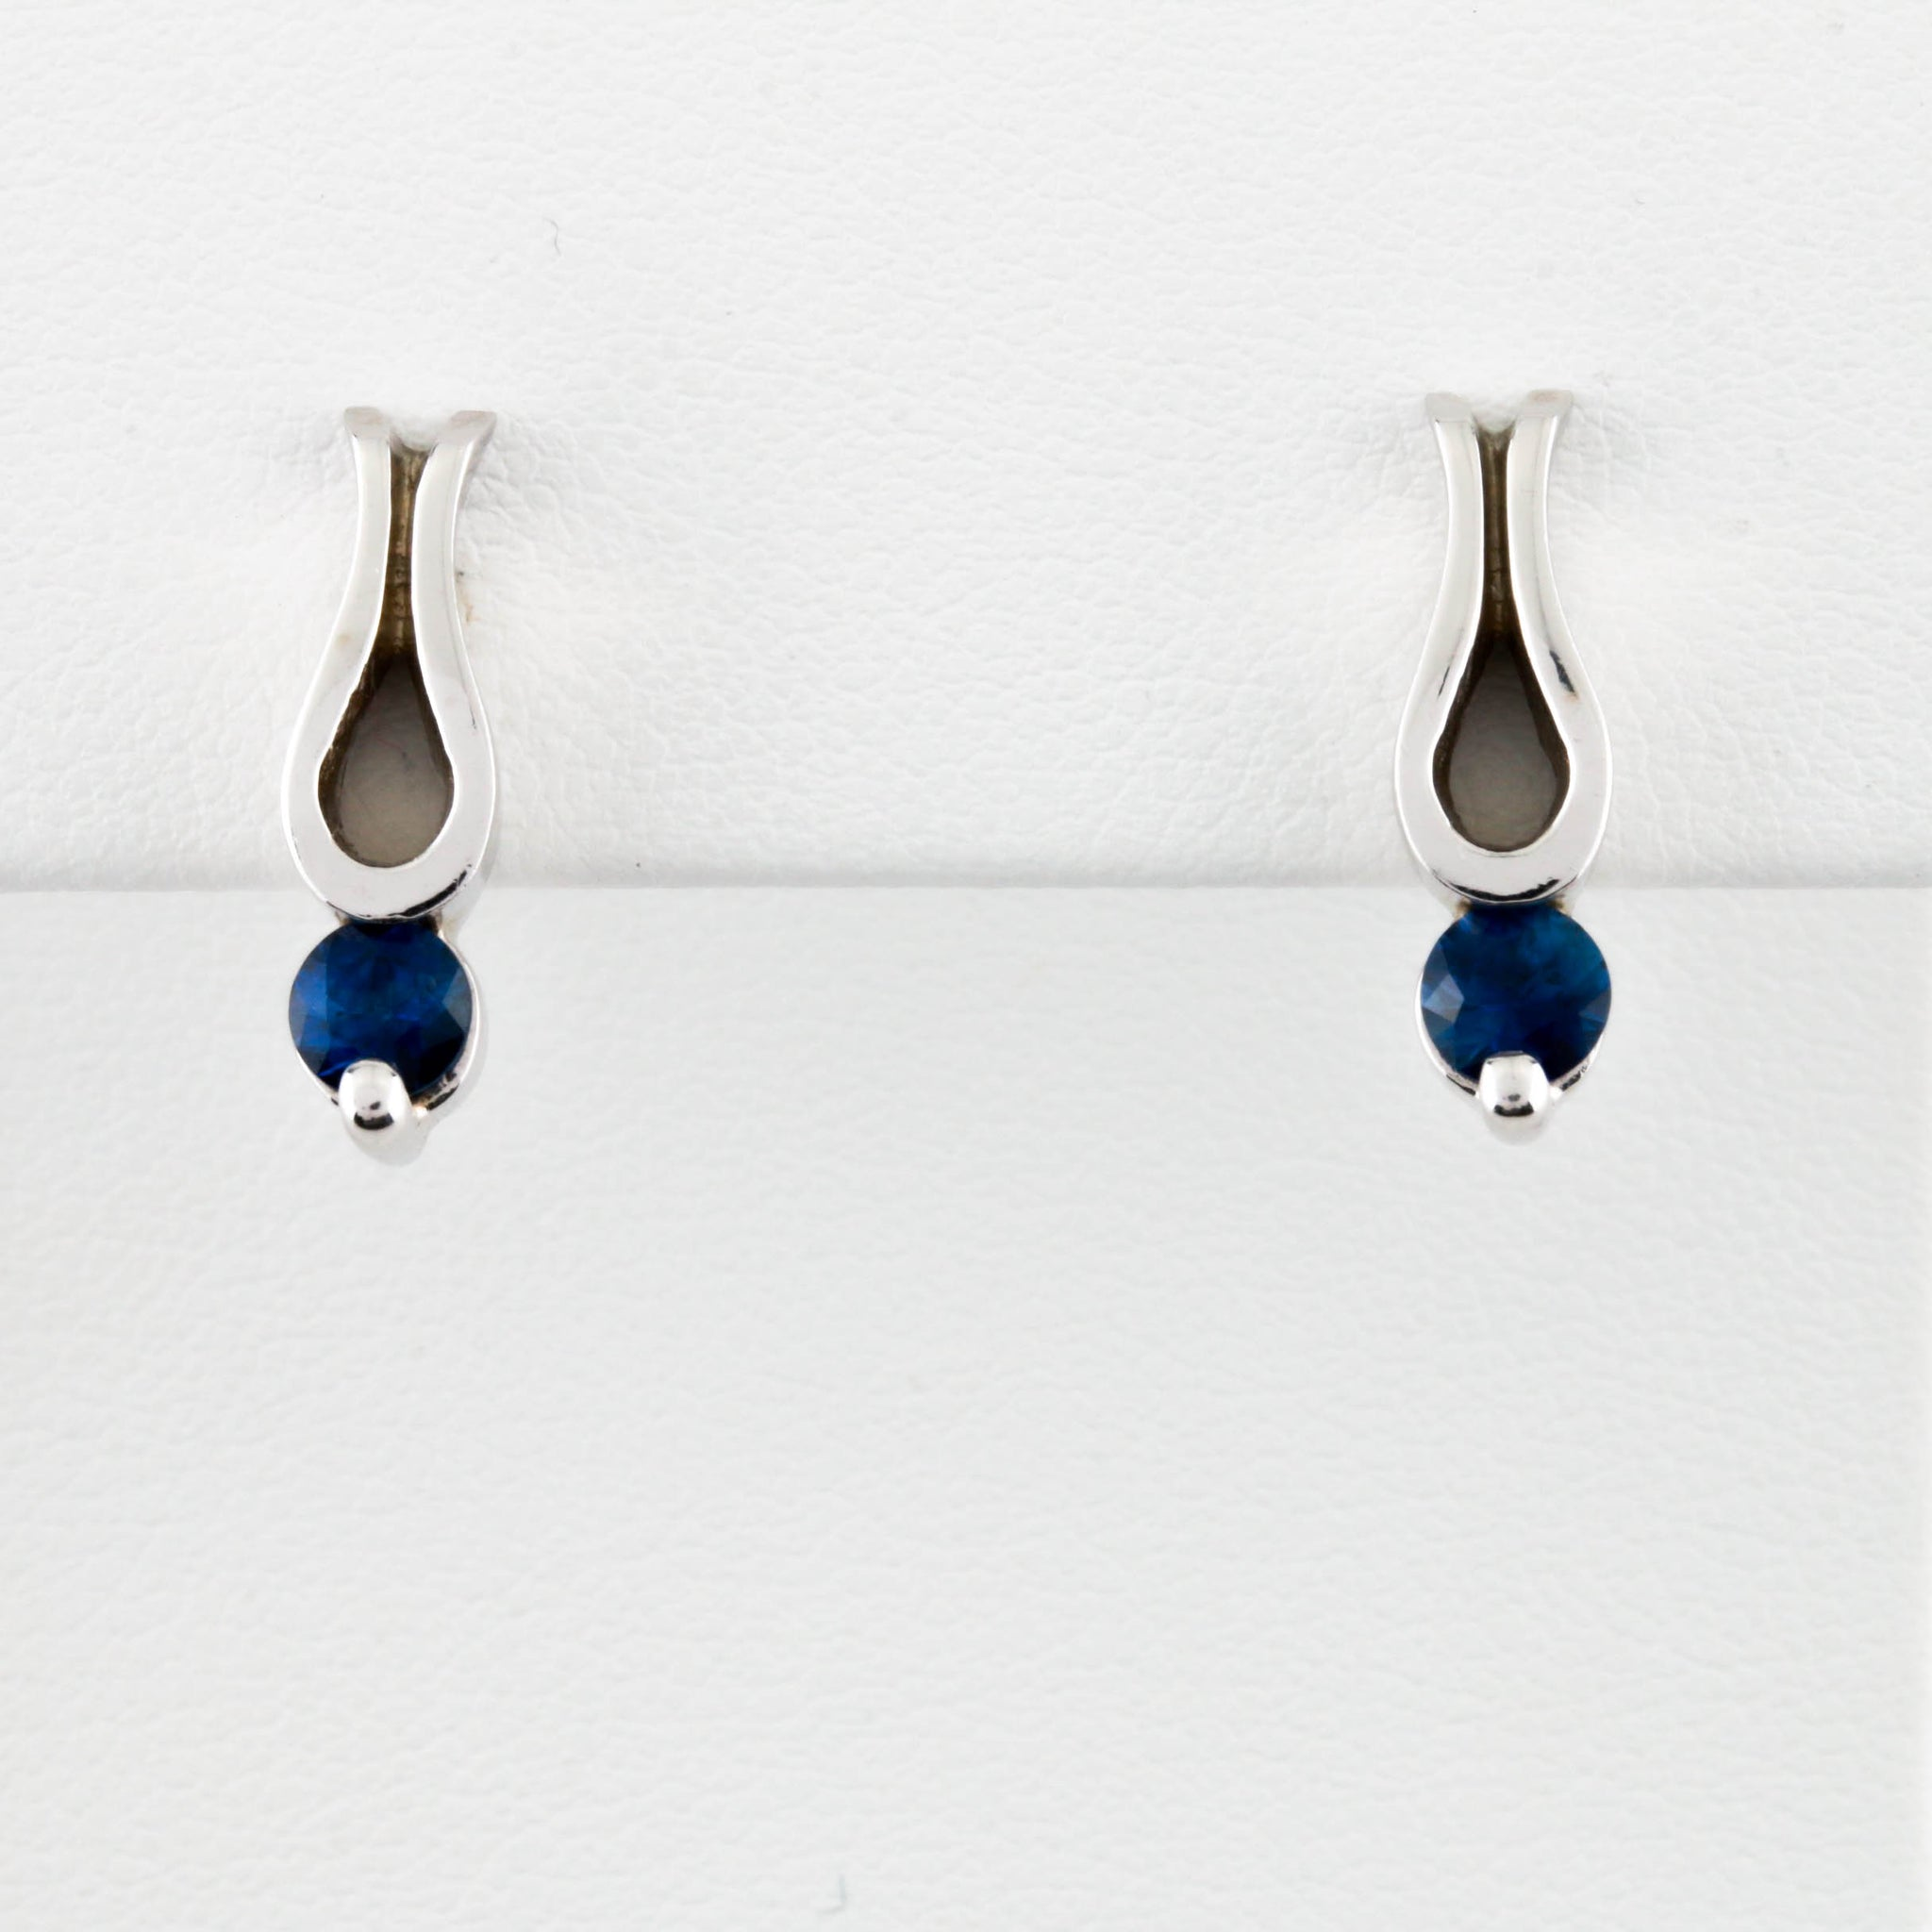 *SOLD* Sapphires in White Gold Earrings - Sindur